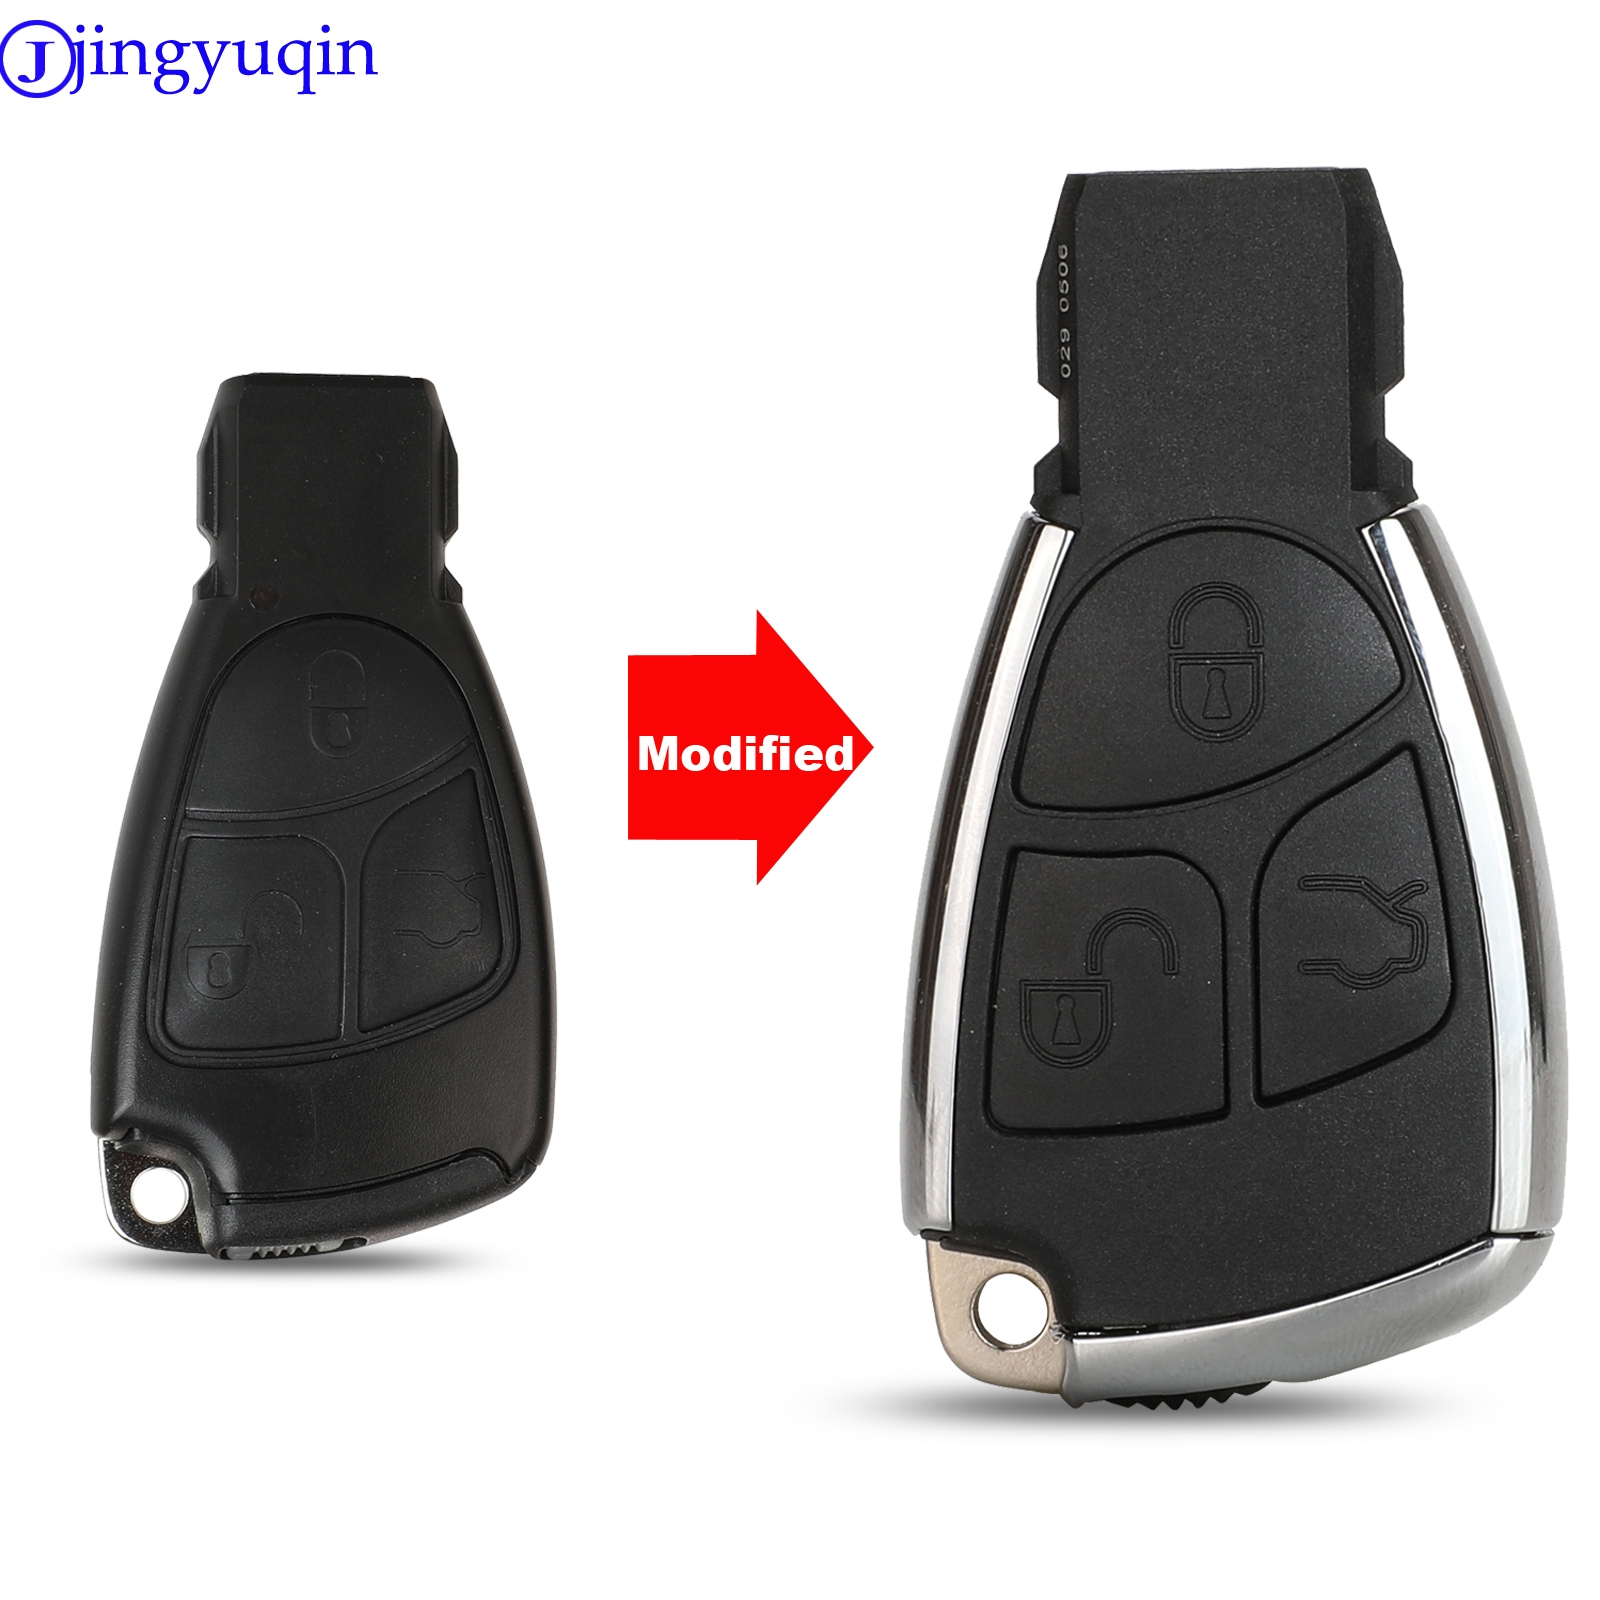 jingyuqin 5ps 3B <font><b>Remote</b></font> Auto Smart <font><b>Key</b></font> Case Shell For Mercedes Benz B C E ML S CLK CL GL <font><b>W211</b></font> Chrome Style With Battery Holder image